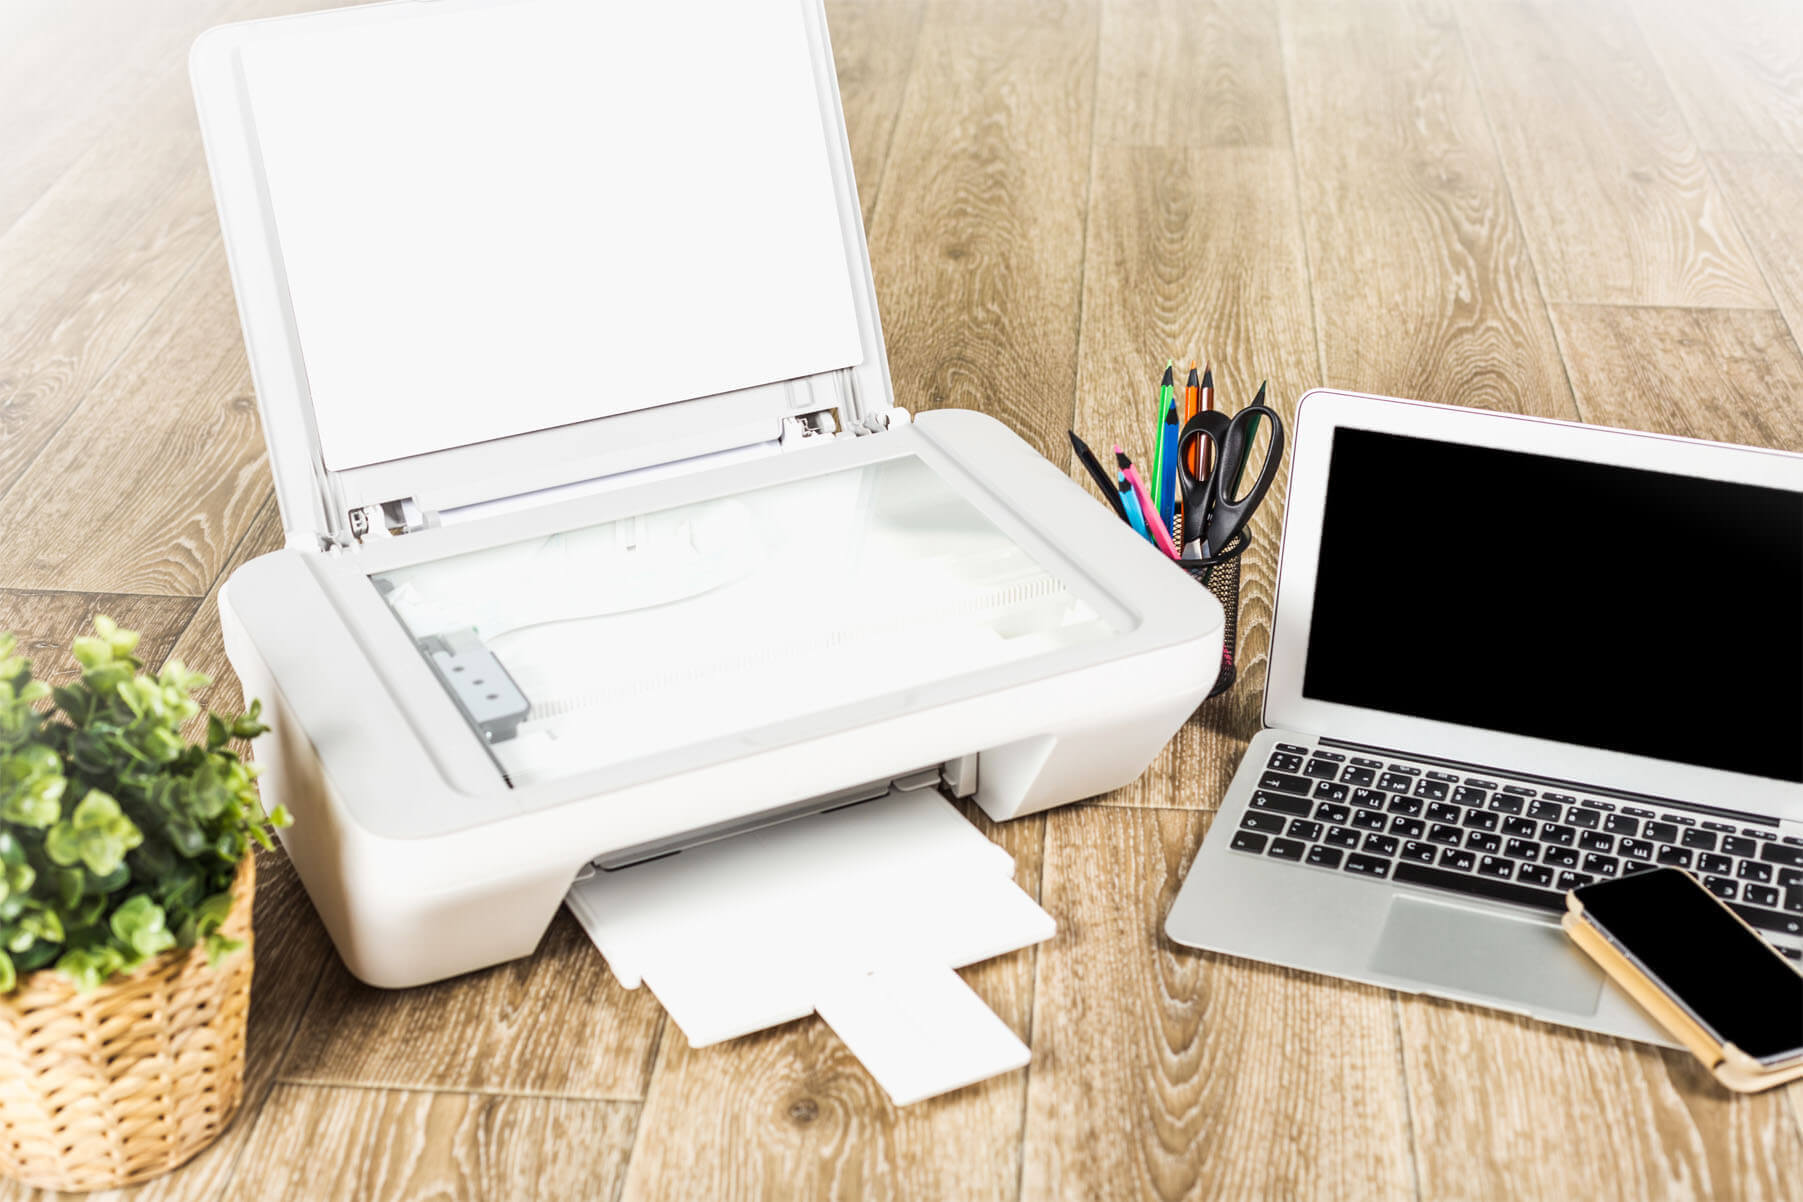 Businesses Still Want Desktops and Printers